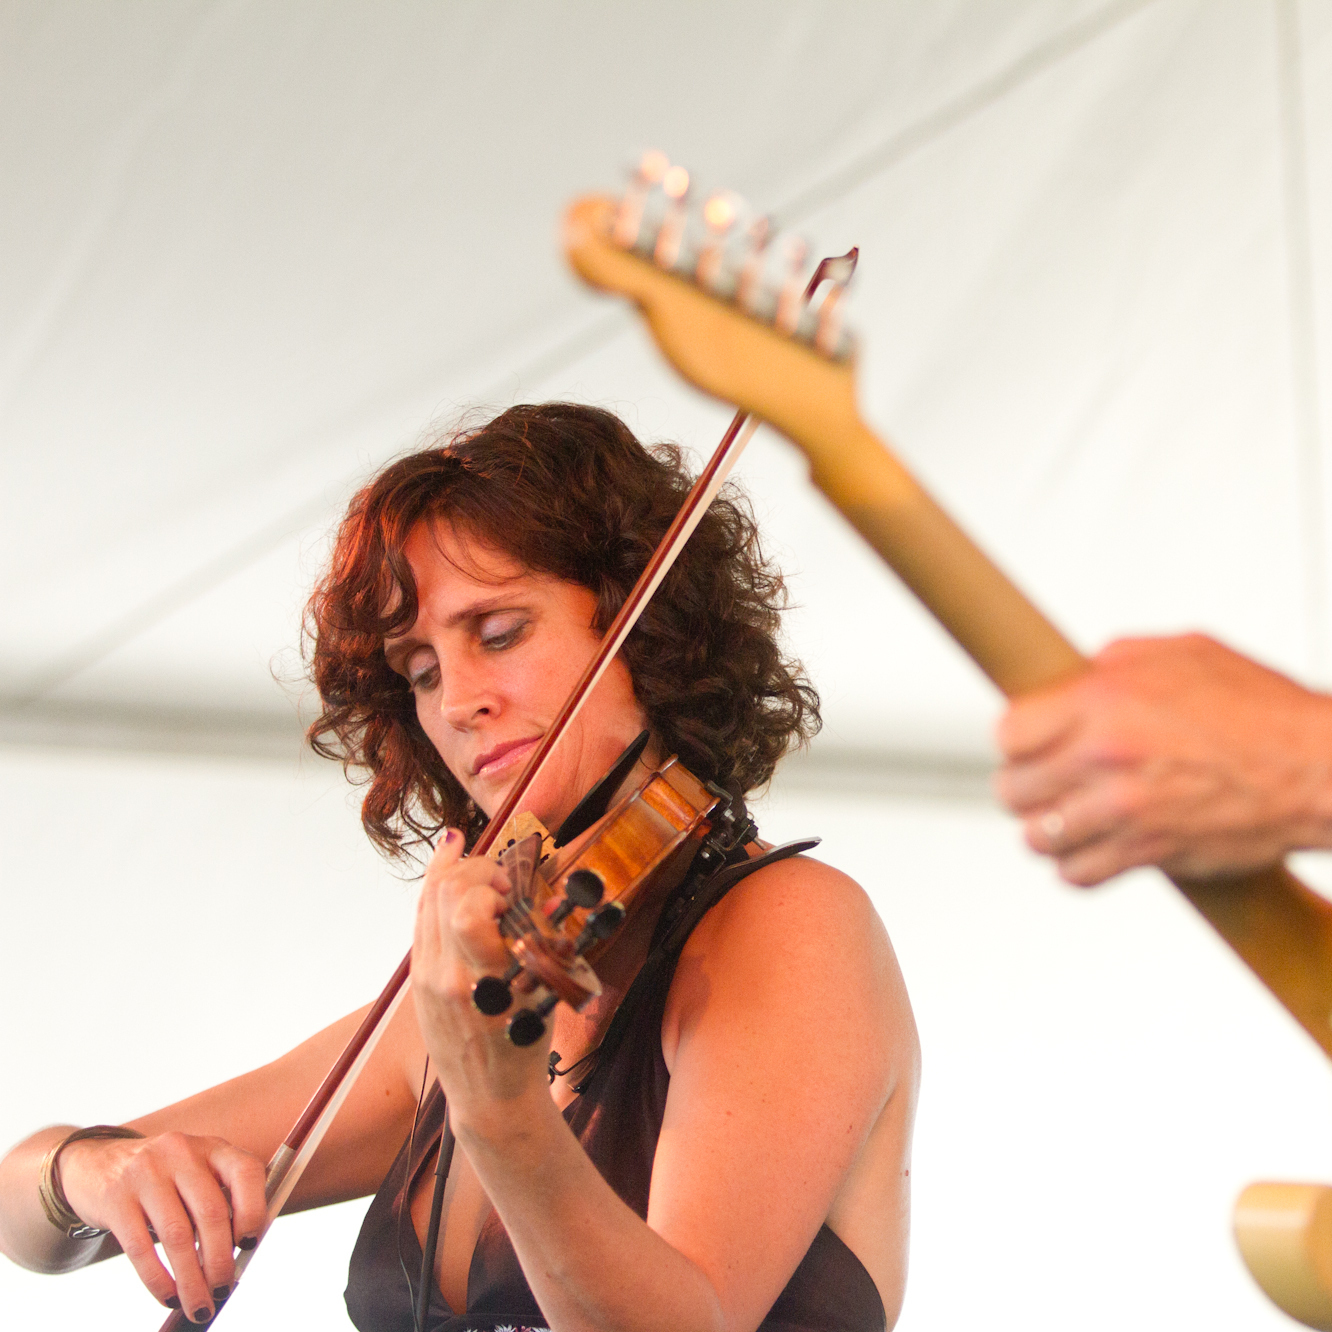 Violinist Jenny Scheinman and guitarist Bill Frisell perform at the 2012 Newport Jazz Festival.